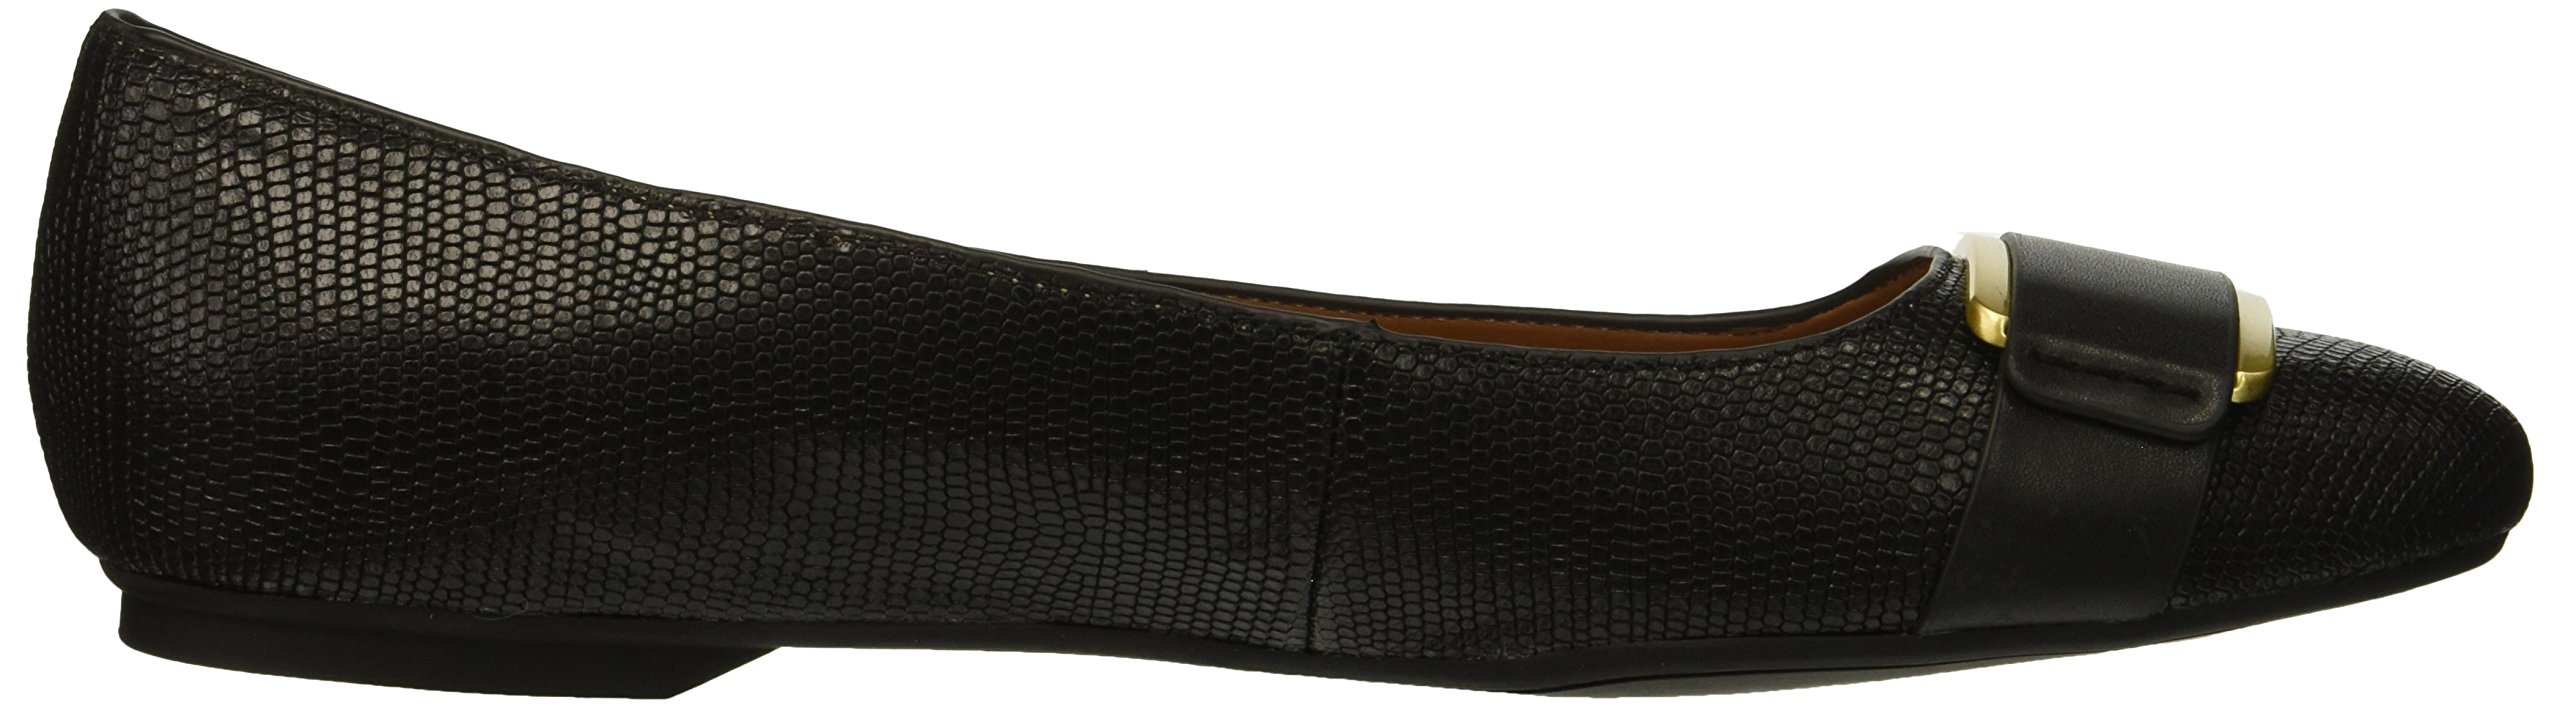 Calvin-Klein-Women-039-s-Oneta-Ballet-Flat-Black-5-M-Choose-SZ-color thumbnail 7